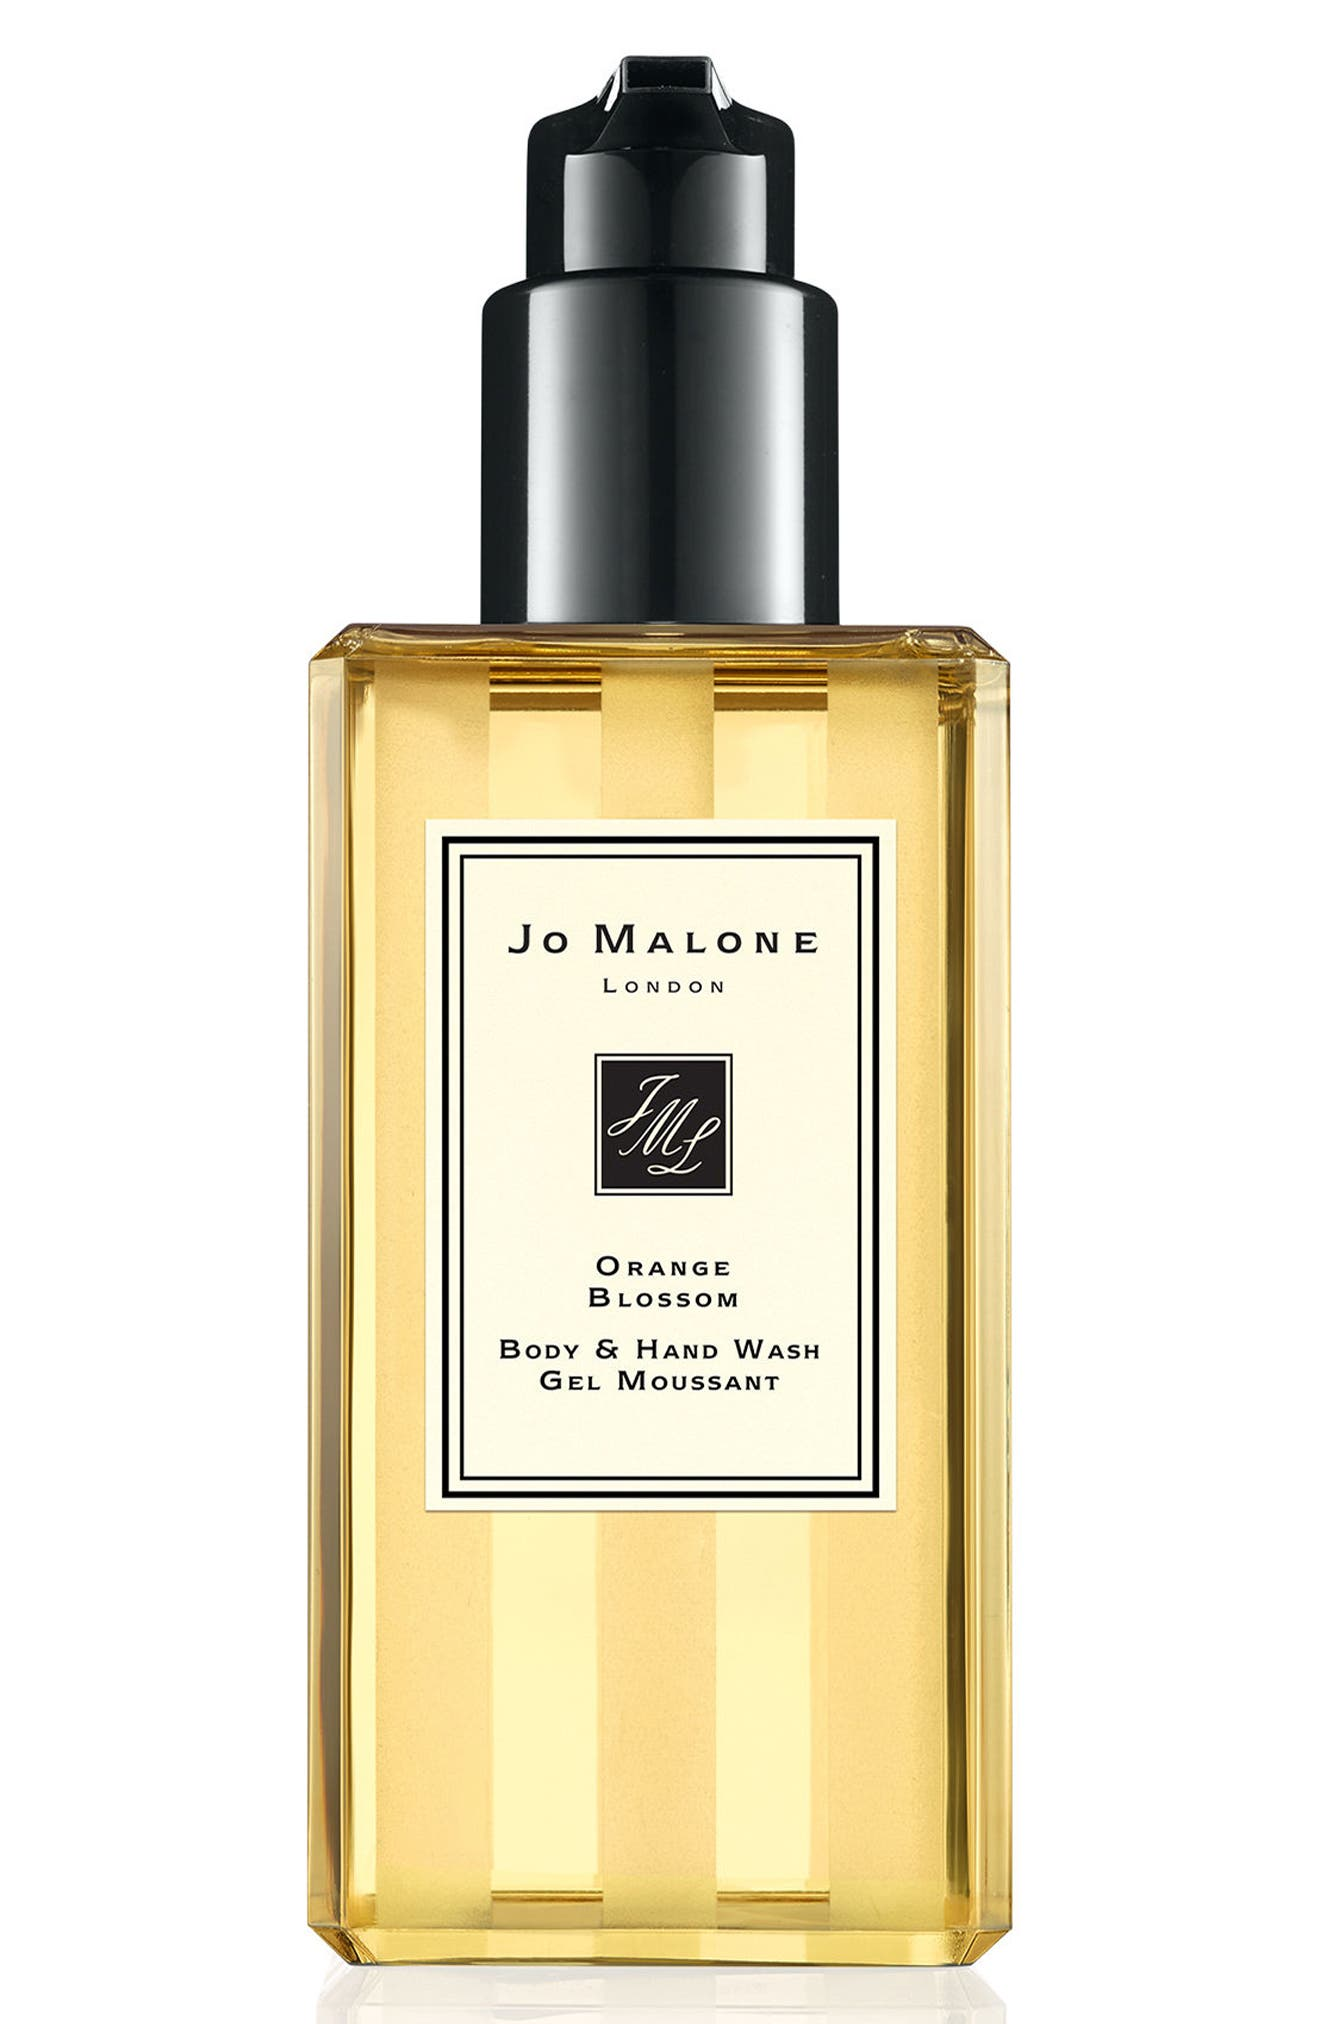 Jo Malone London™ Orange Blossom Body & Hand Wash